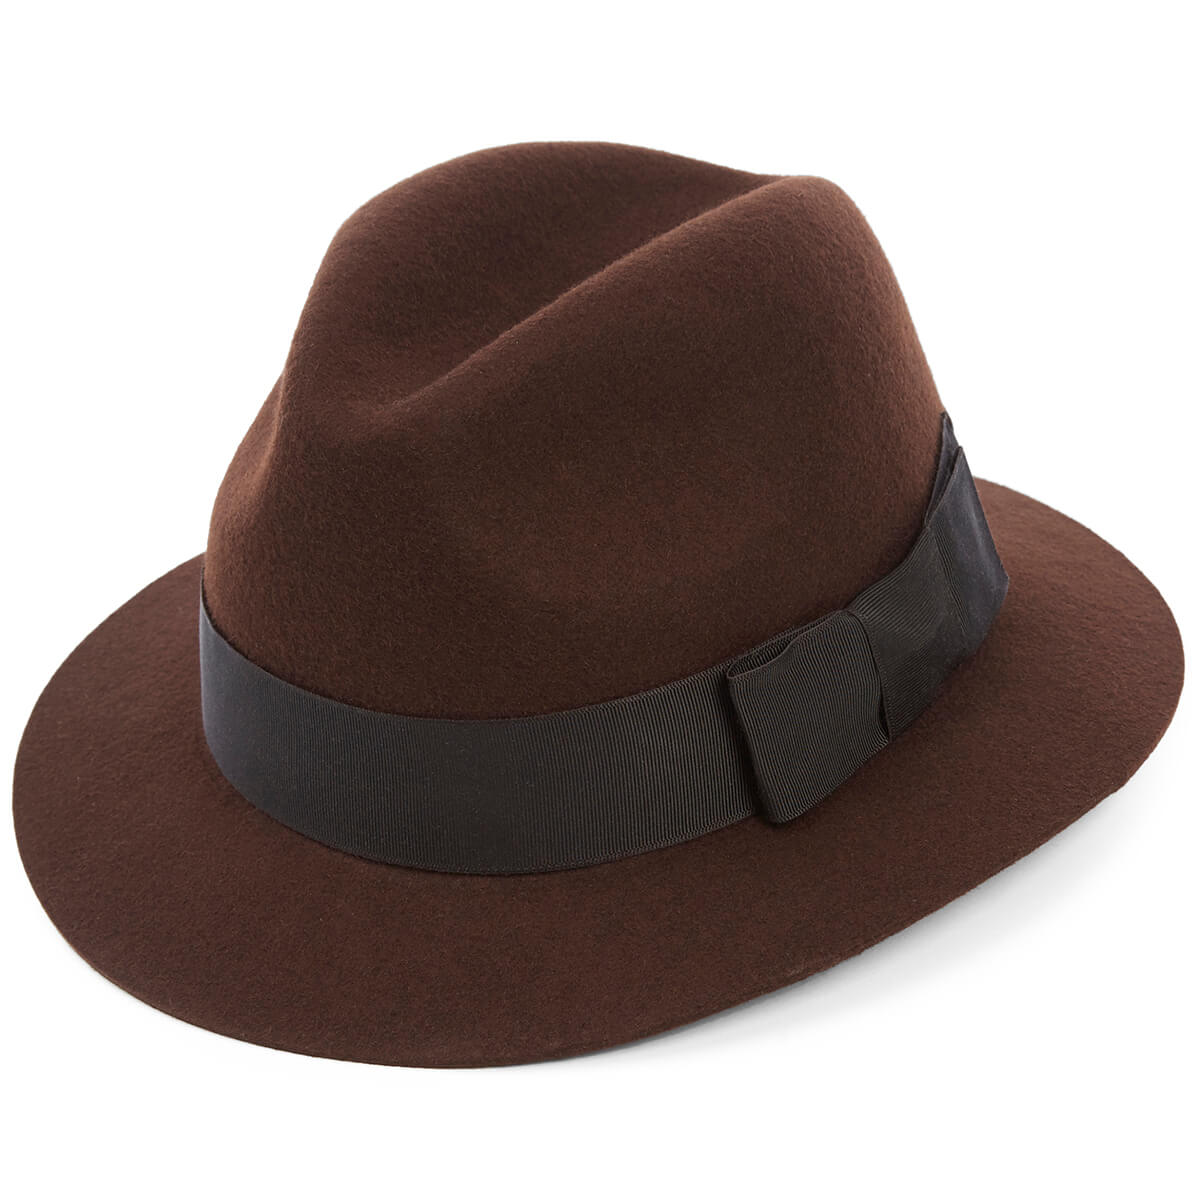 Creswell Wool Felt Trilby Hat - BROWN - size 59